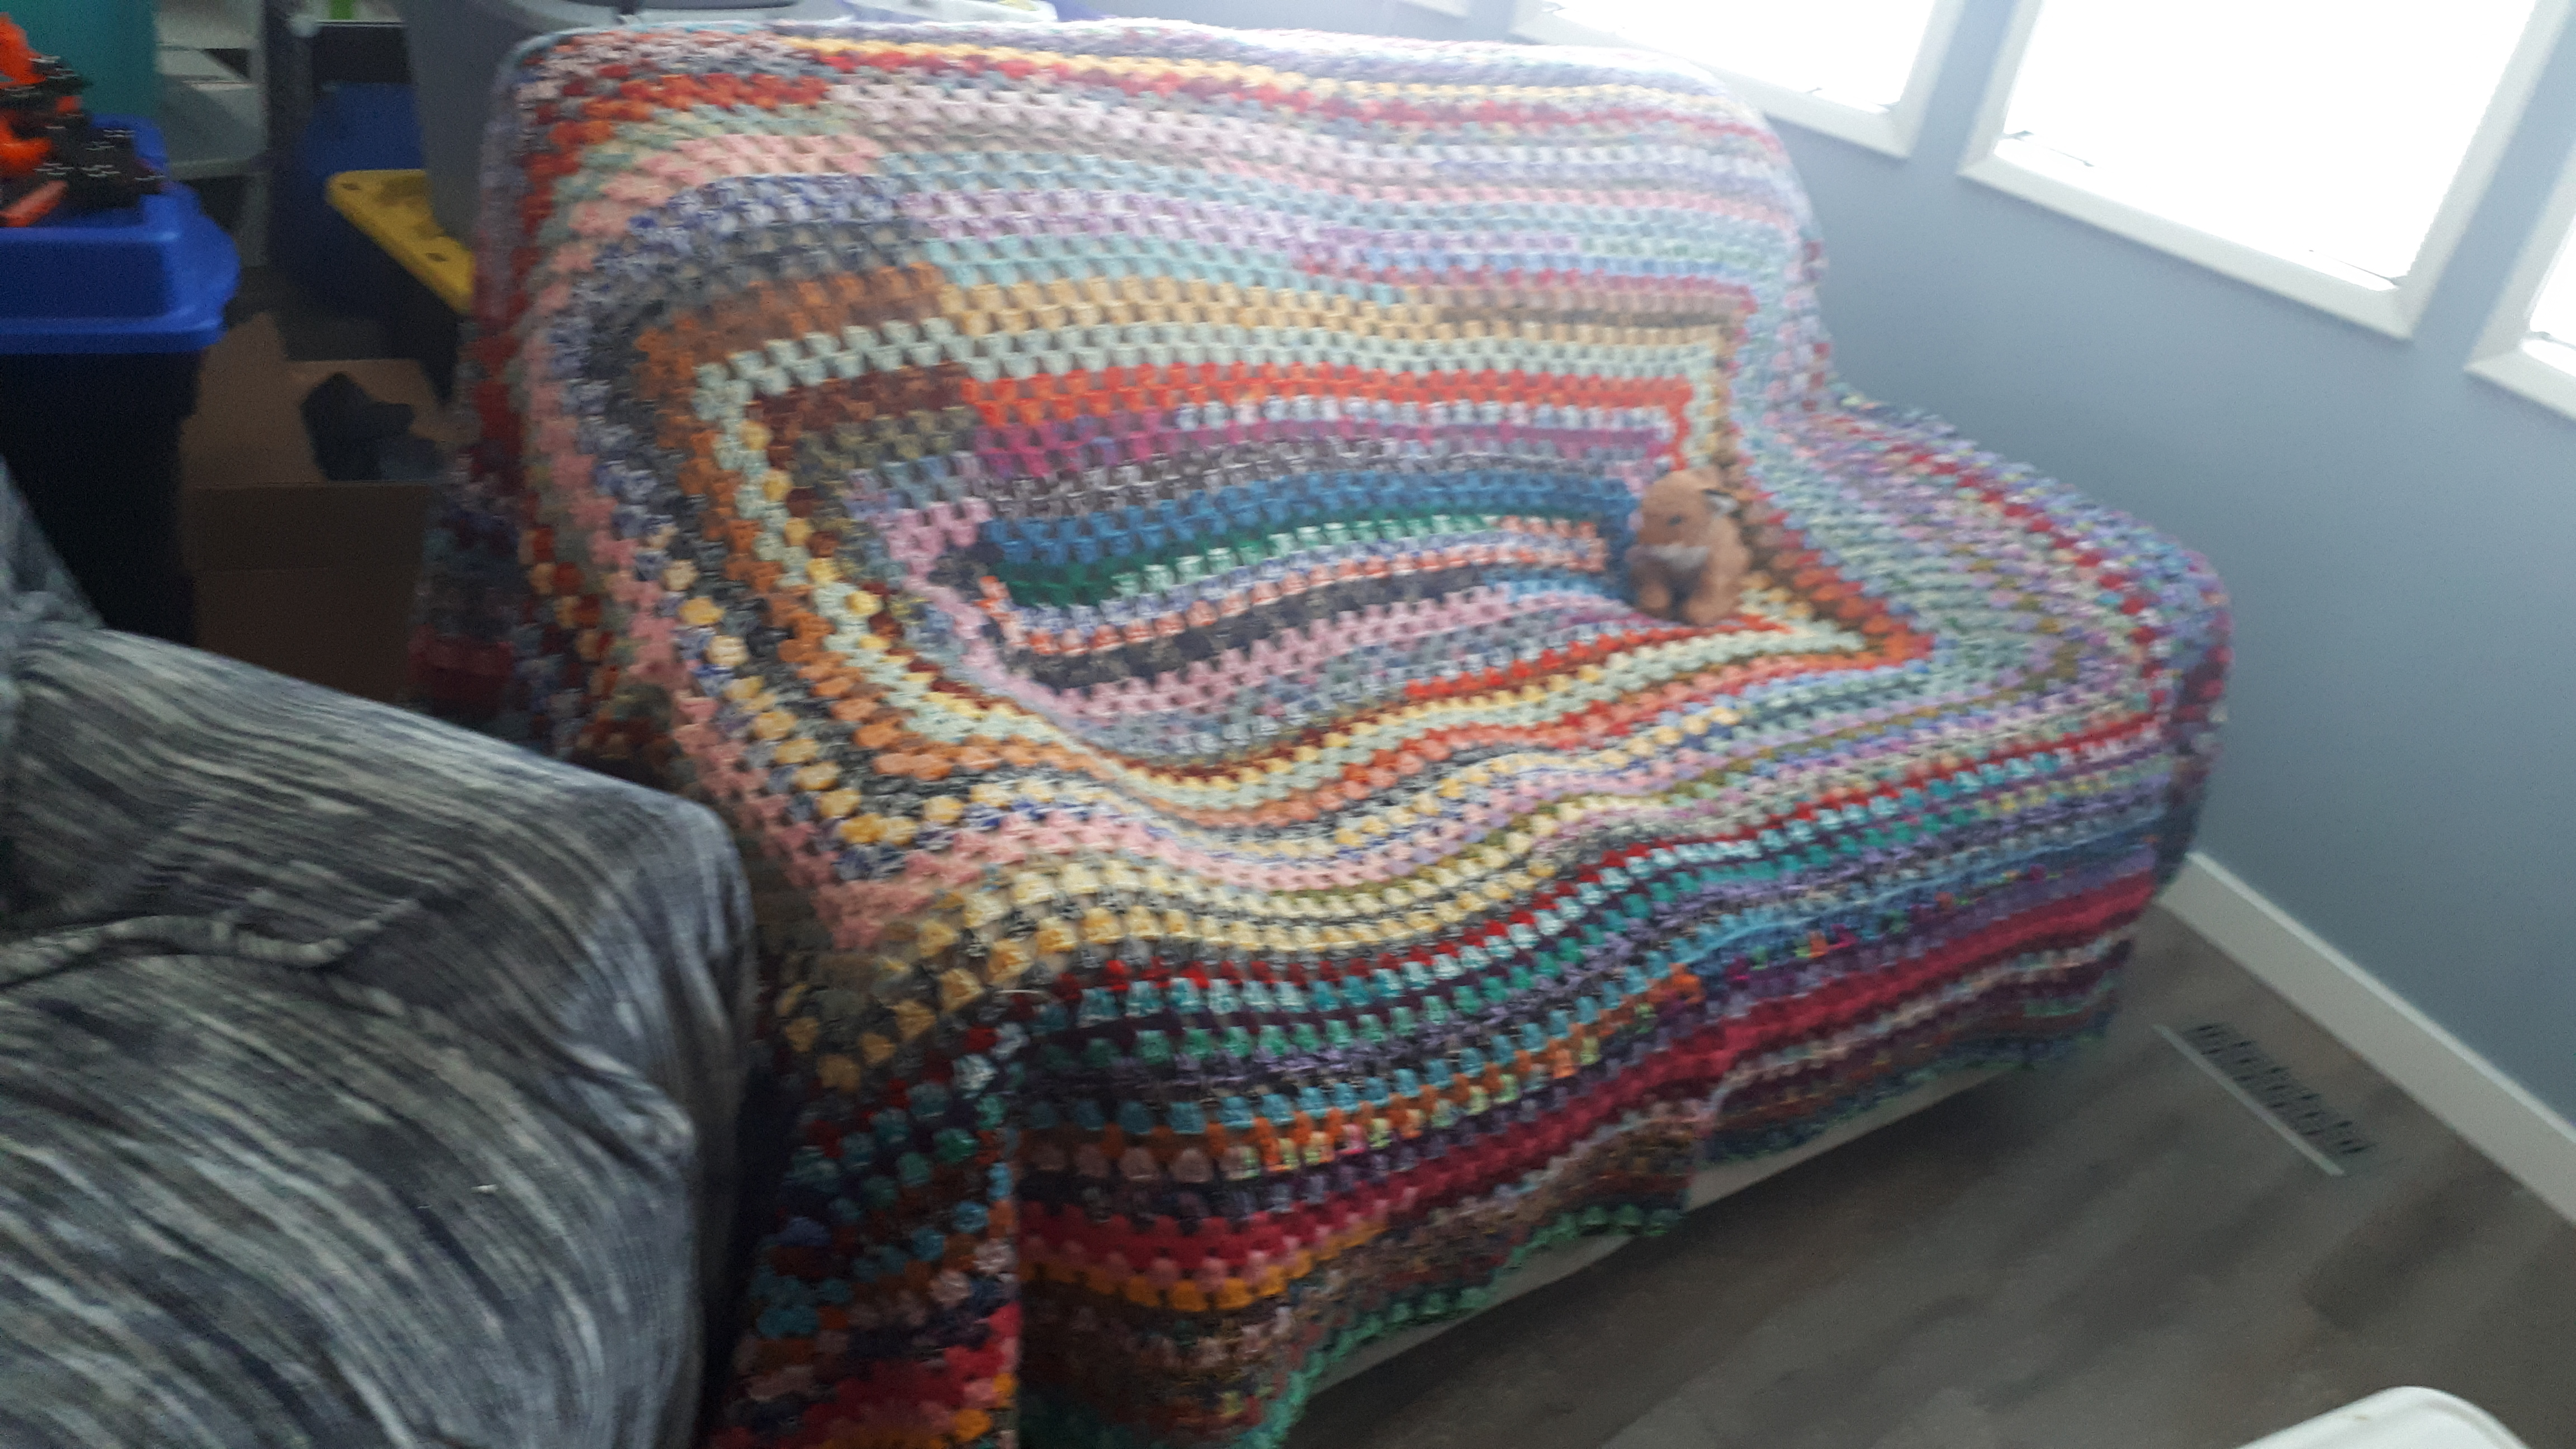 A granny rectangle blanket for the couch. 2 strand acrylic yarn randomly paired by Karen Richardson.